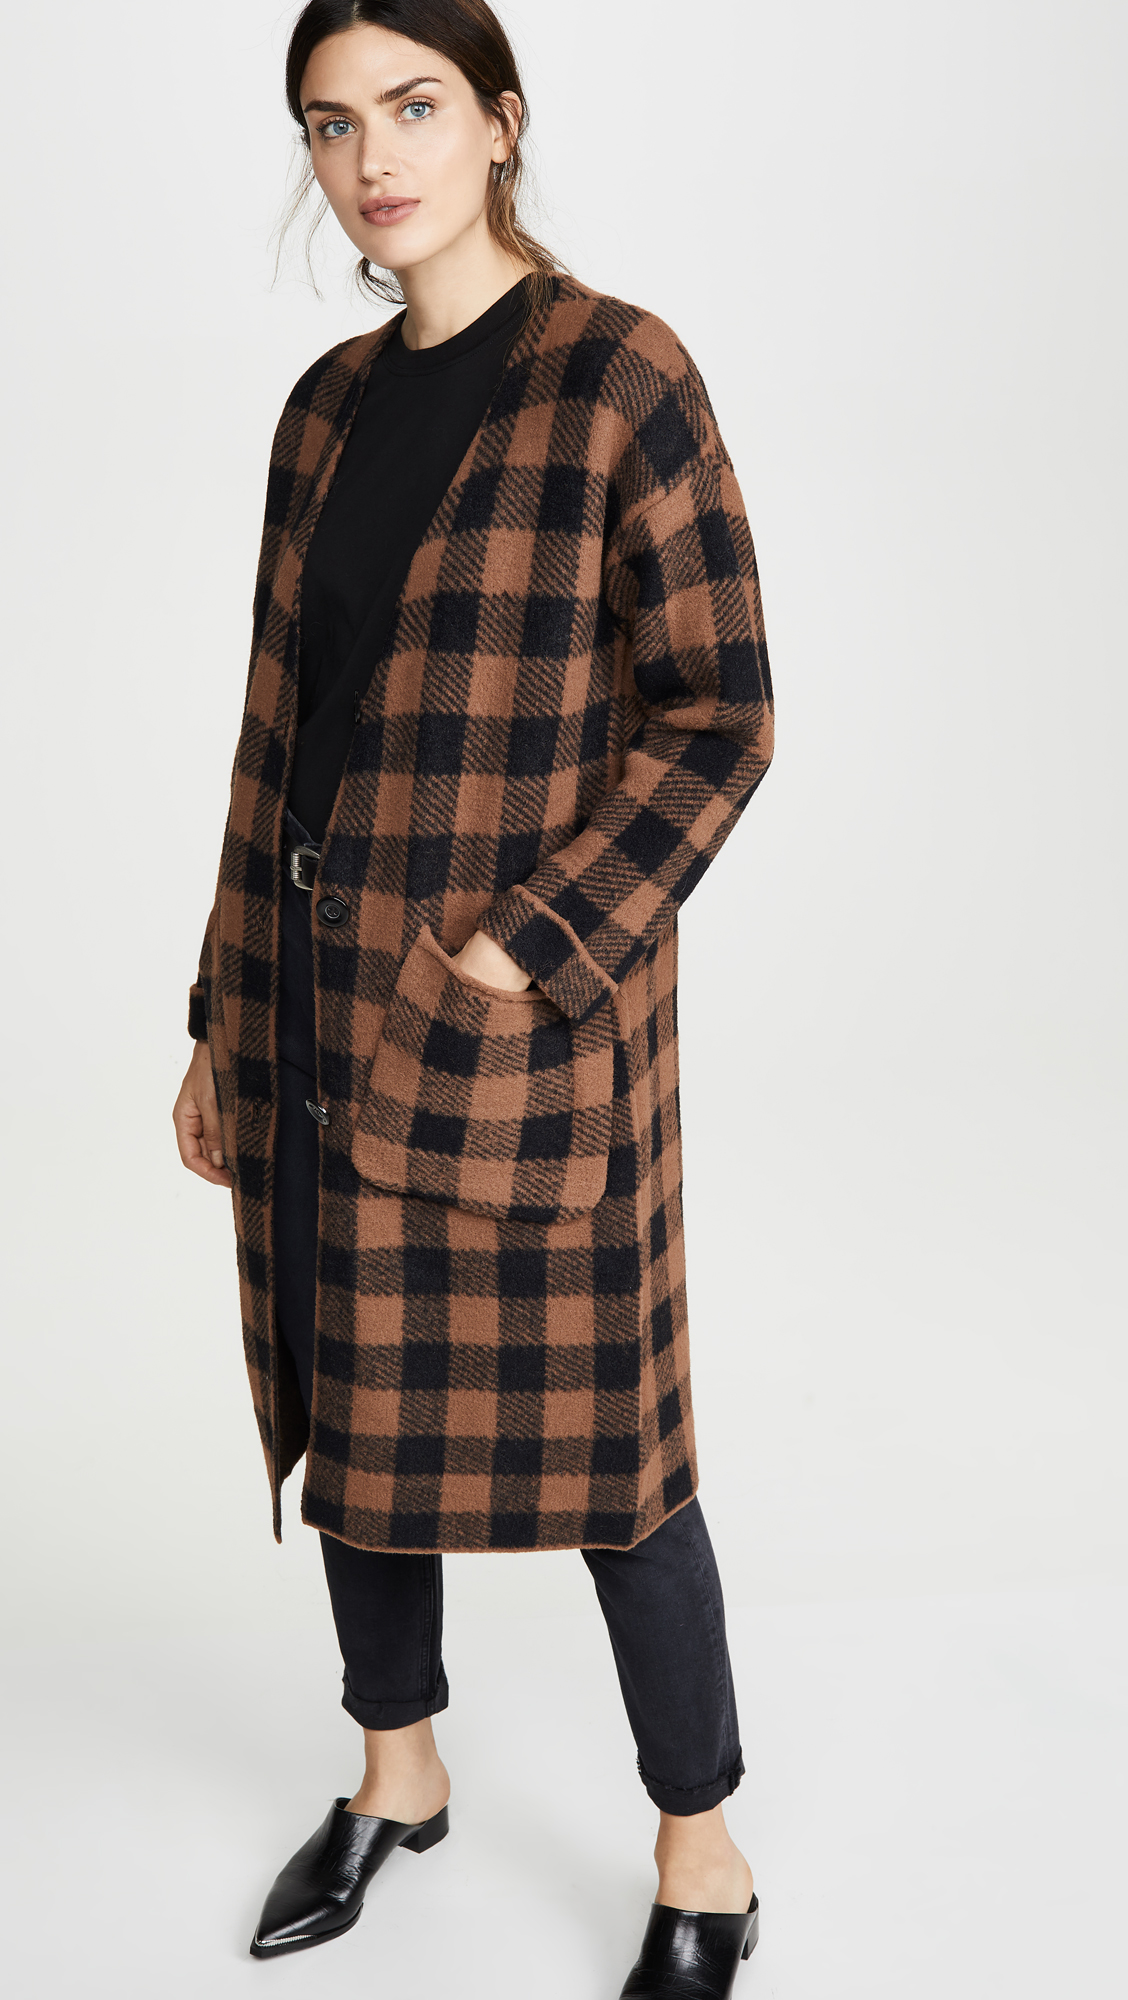 Black and Brown Check Cardigan